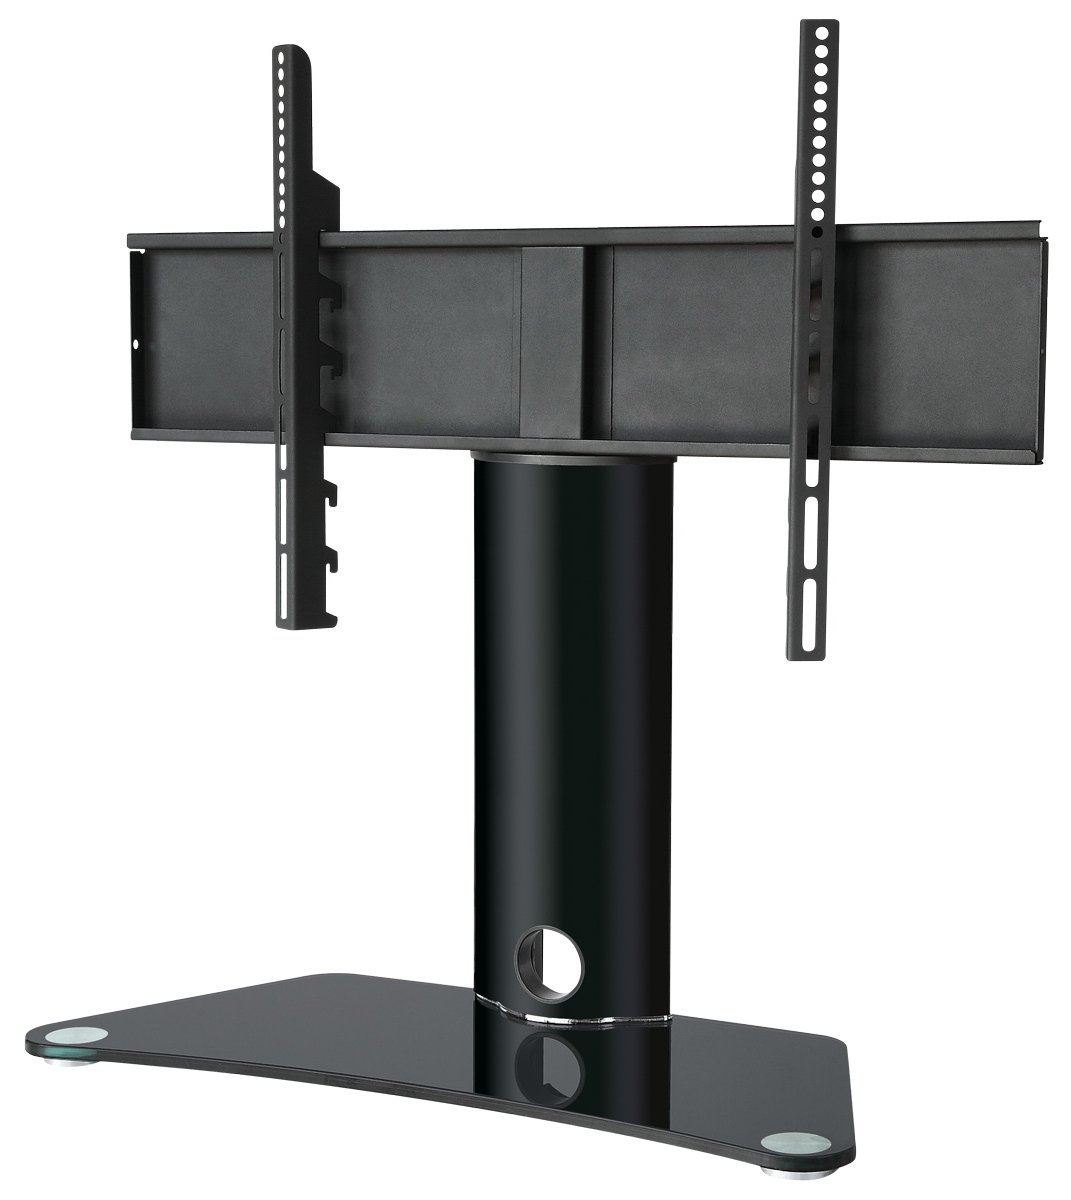 Table Mounting Bracket : Ultimate mounts um universal table top tv stand